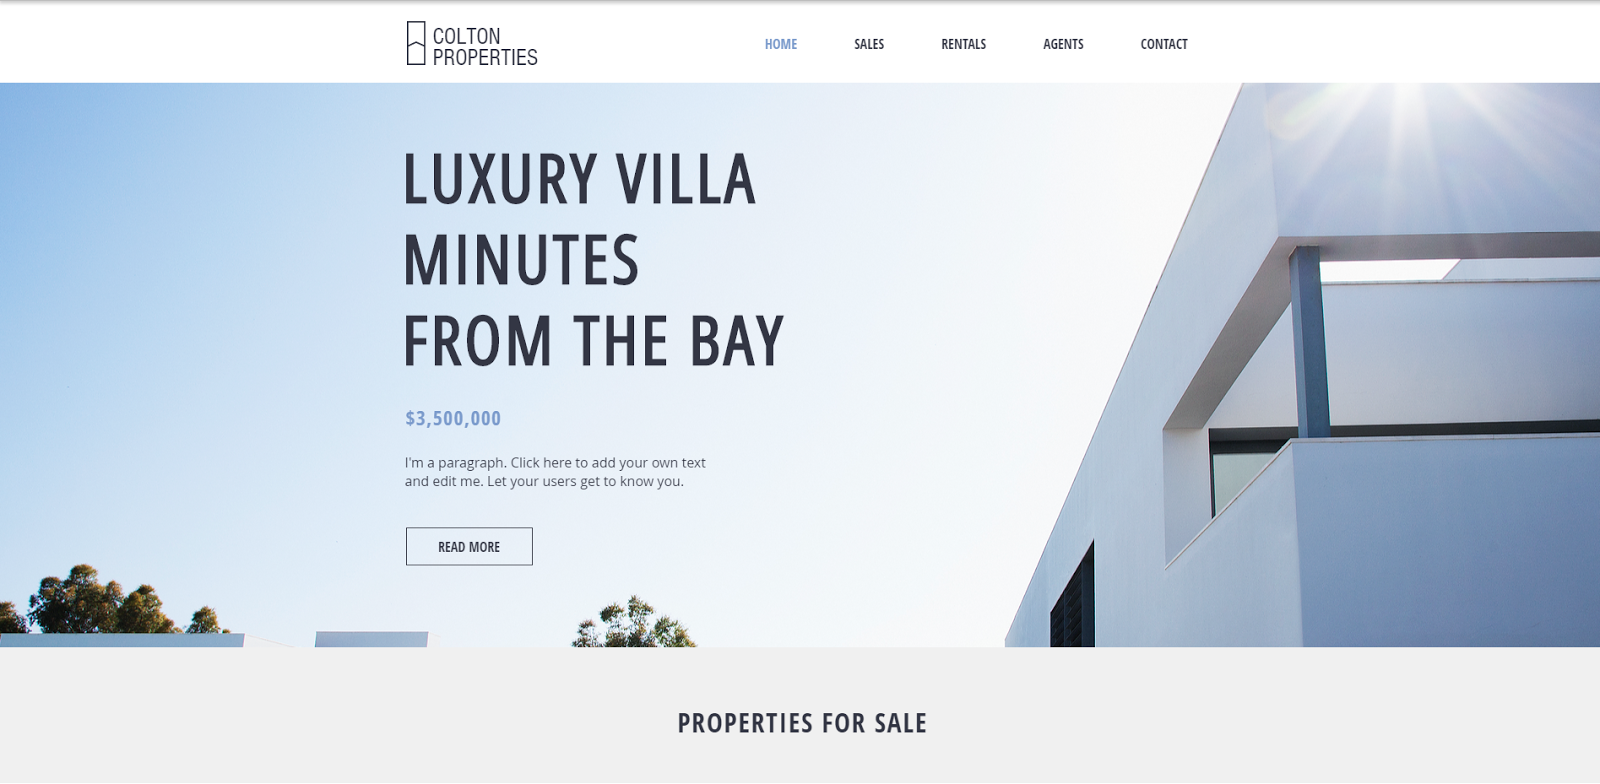 Wix Real Estate Websites: How to Easily Build a Real Estate Website With Wix